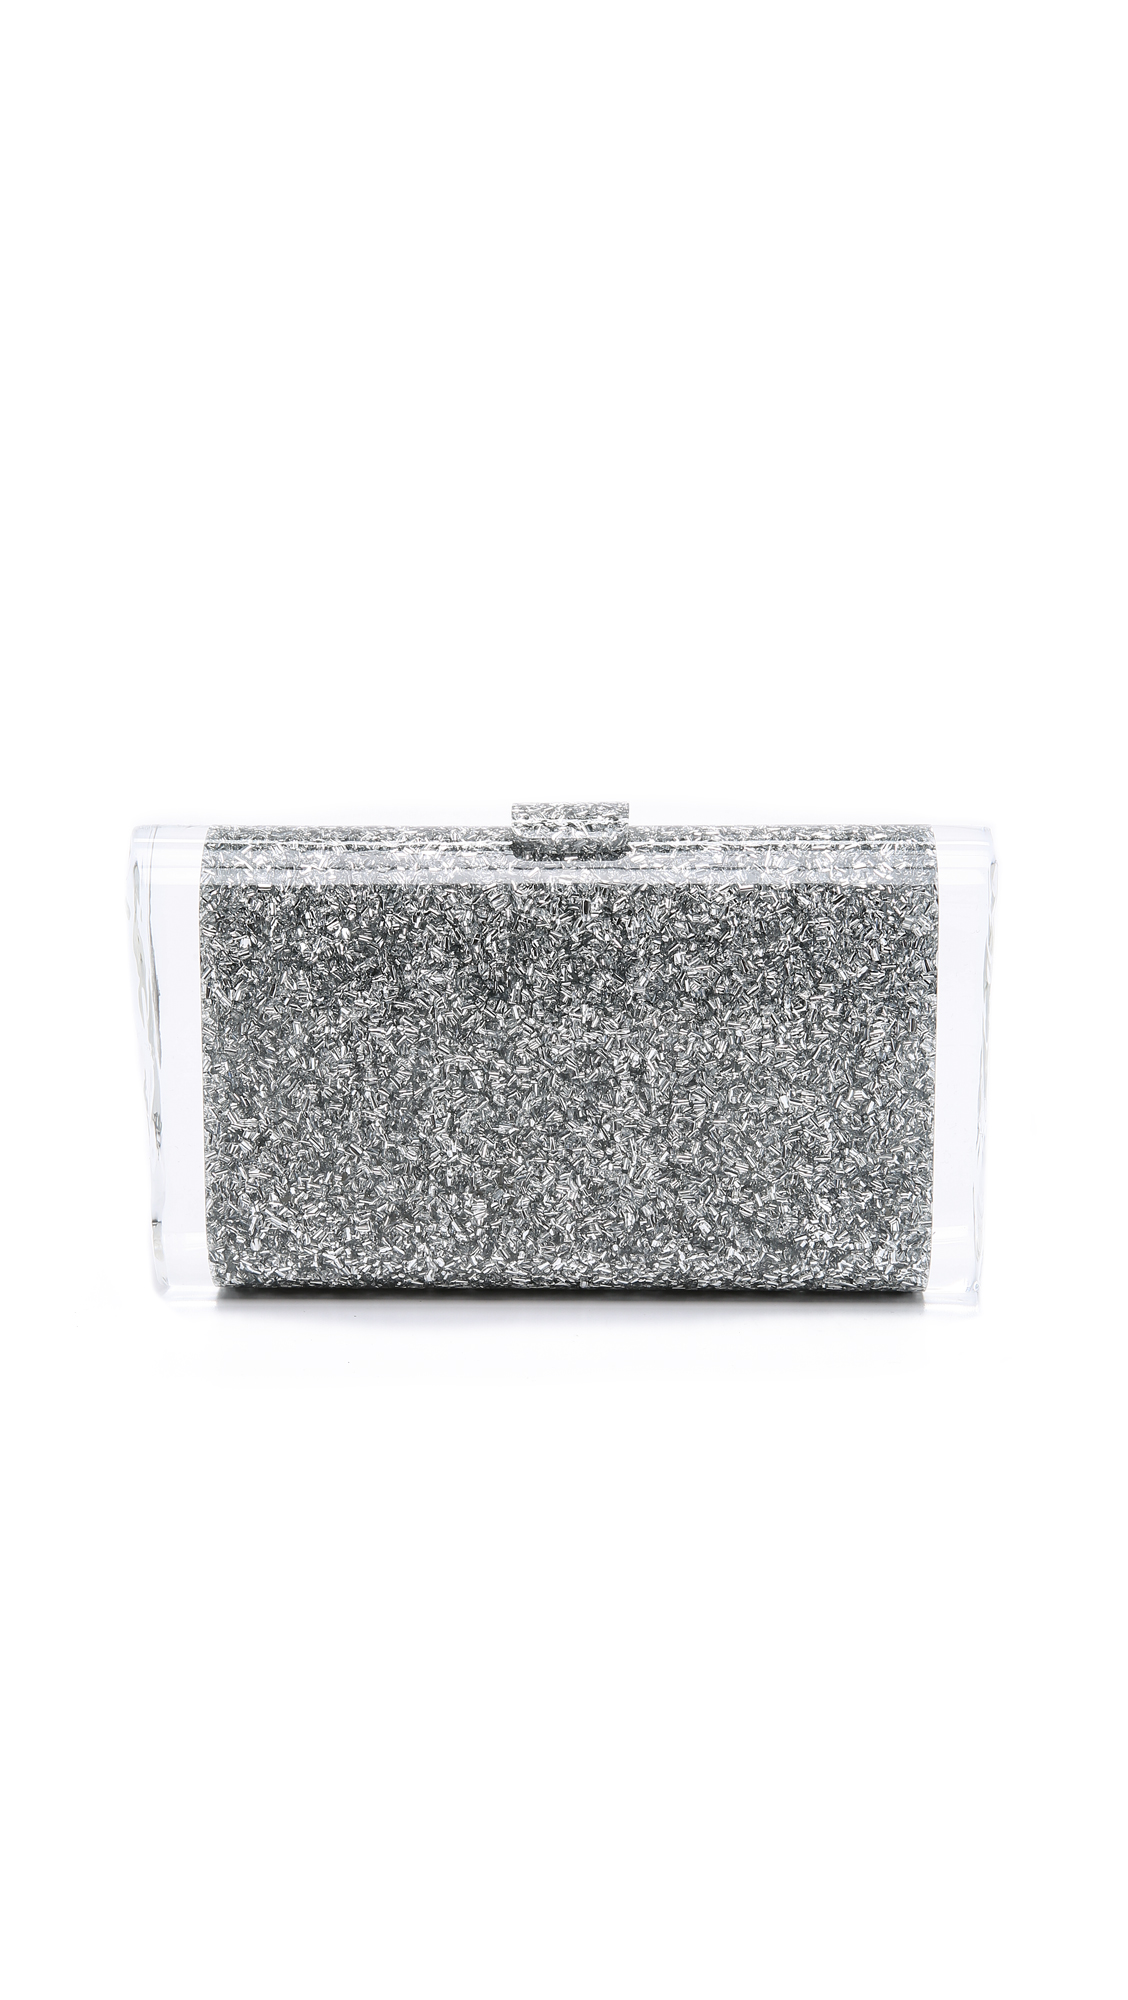 A glittering acrylic Edie Parker clutch with a bold, elegant look. Textured sides. Snap closure at main flap. Unlined interior with mirror panel. Dust bag and microfiber polishing cloth included. Fabric: Acrylic. Weight: 13oz / 0.37kg. Made